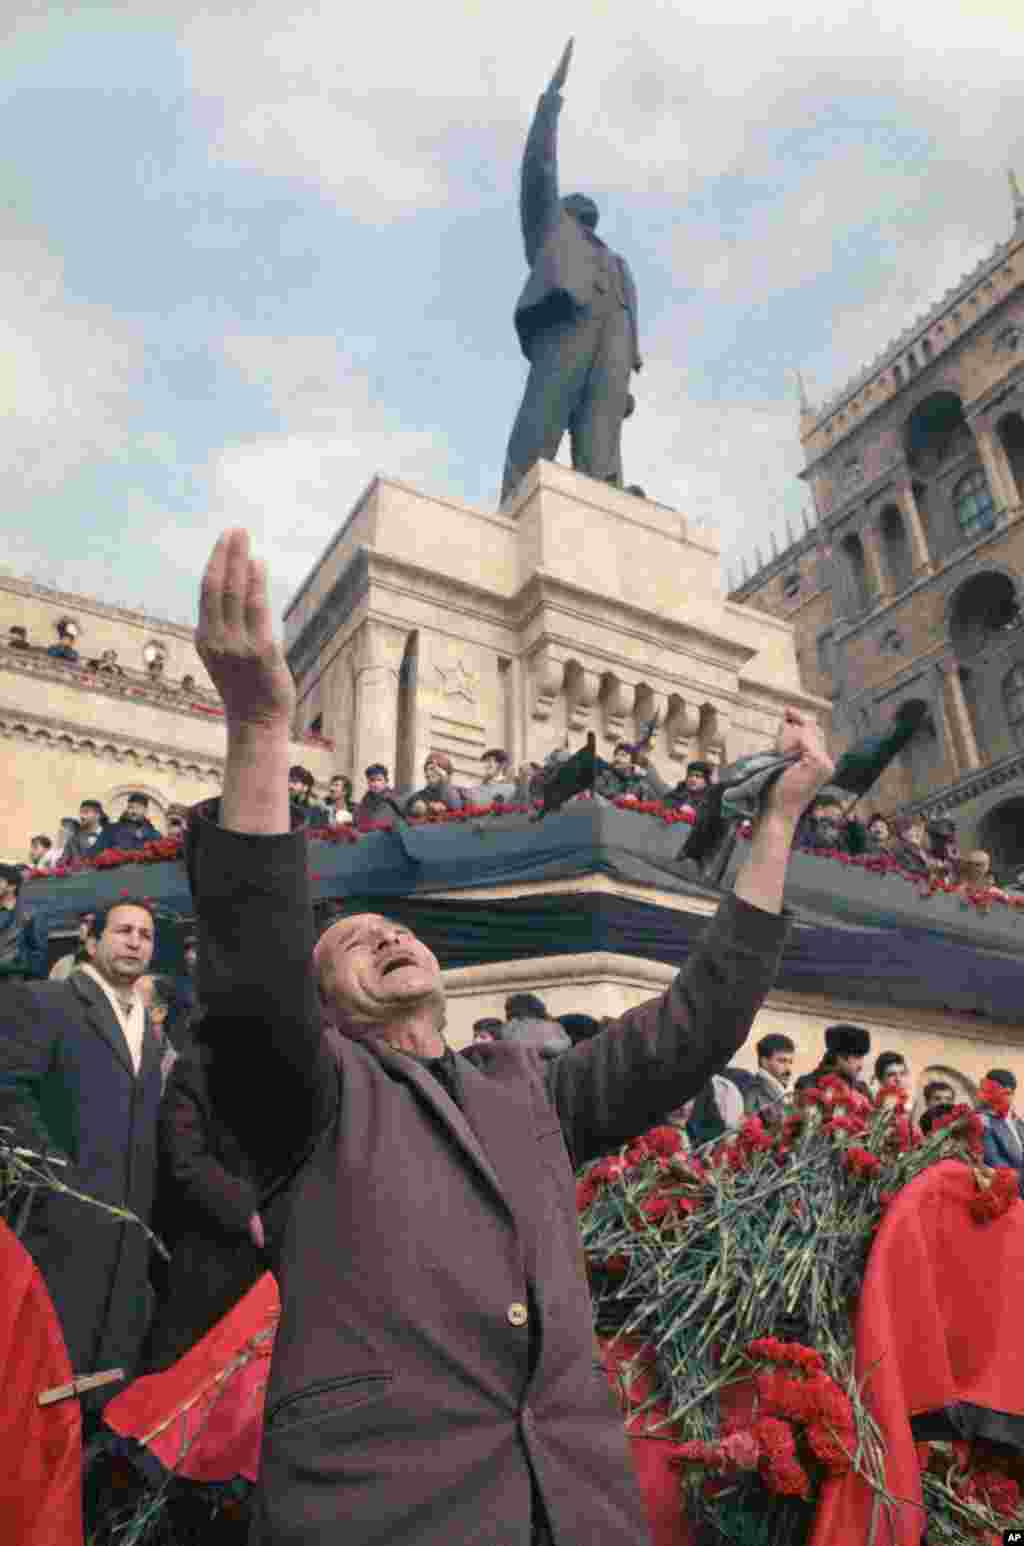 A man lifts his arms in grief under a statue of Lenin during a mass funeral in Baku. The traditional 40-day mourning period for the dead was marked by a national strike across Azerbaijan.